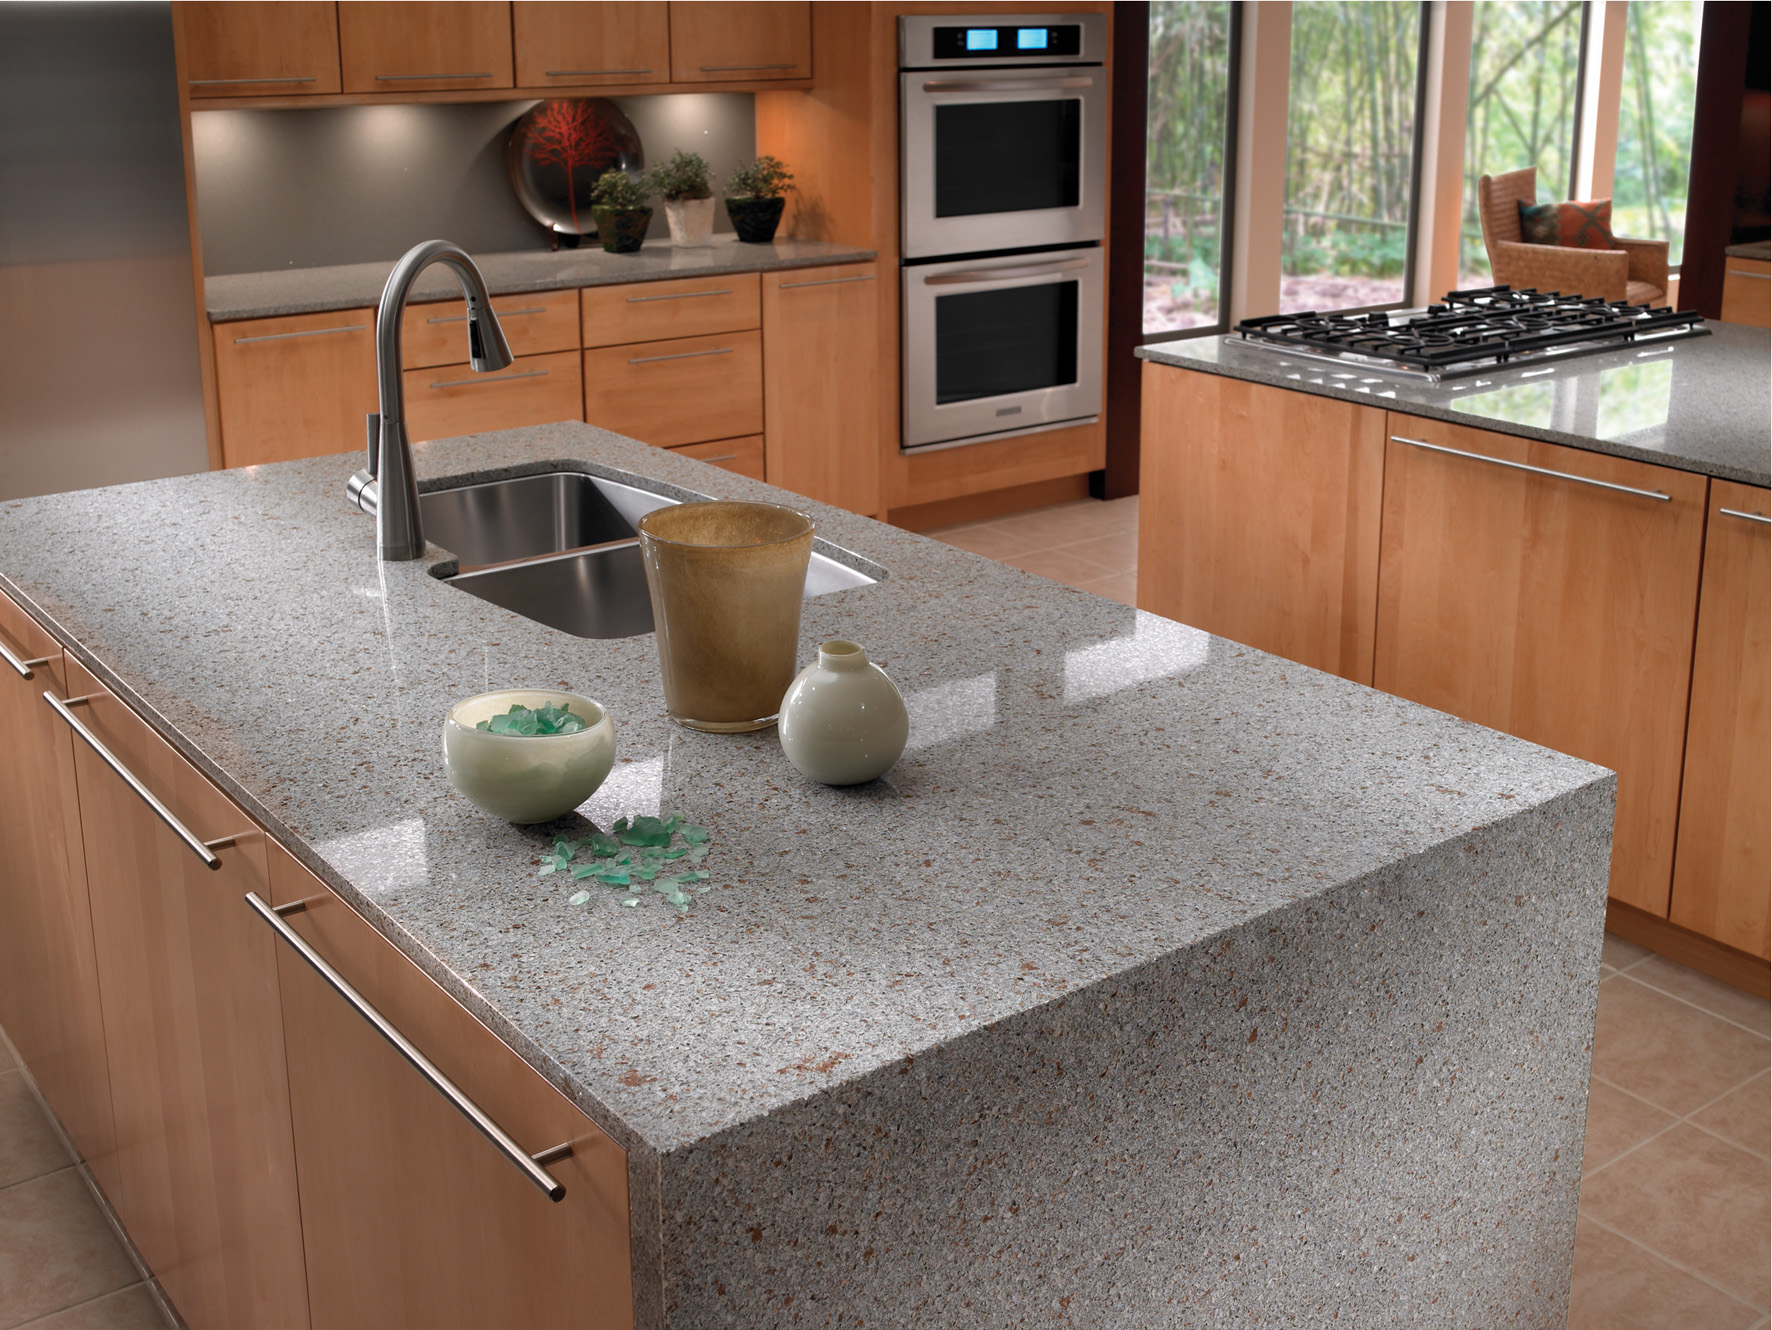 Cosentino Granite Countertops : Eco cosentino news united kingdom and ireland